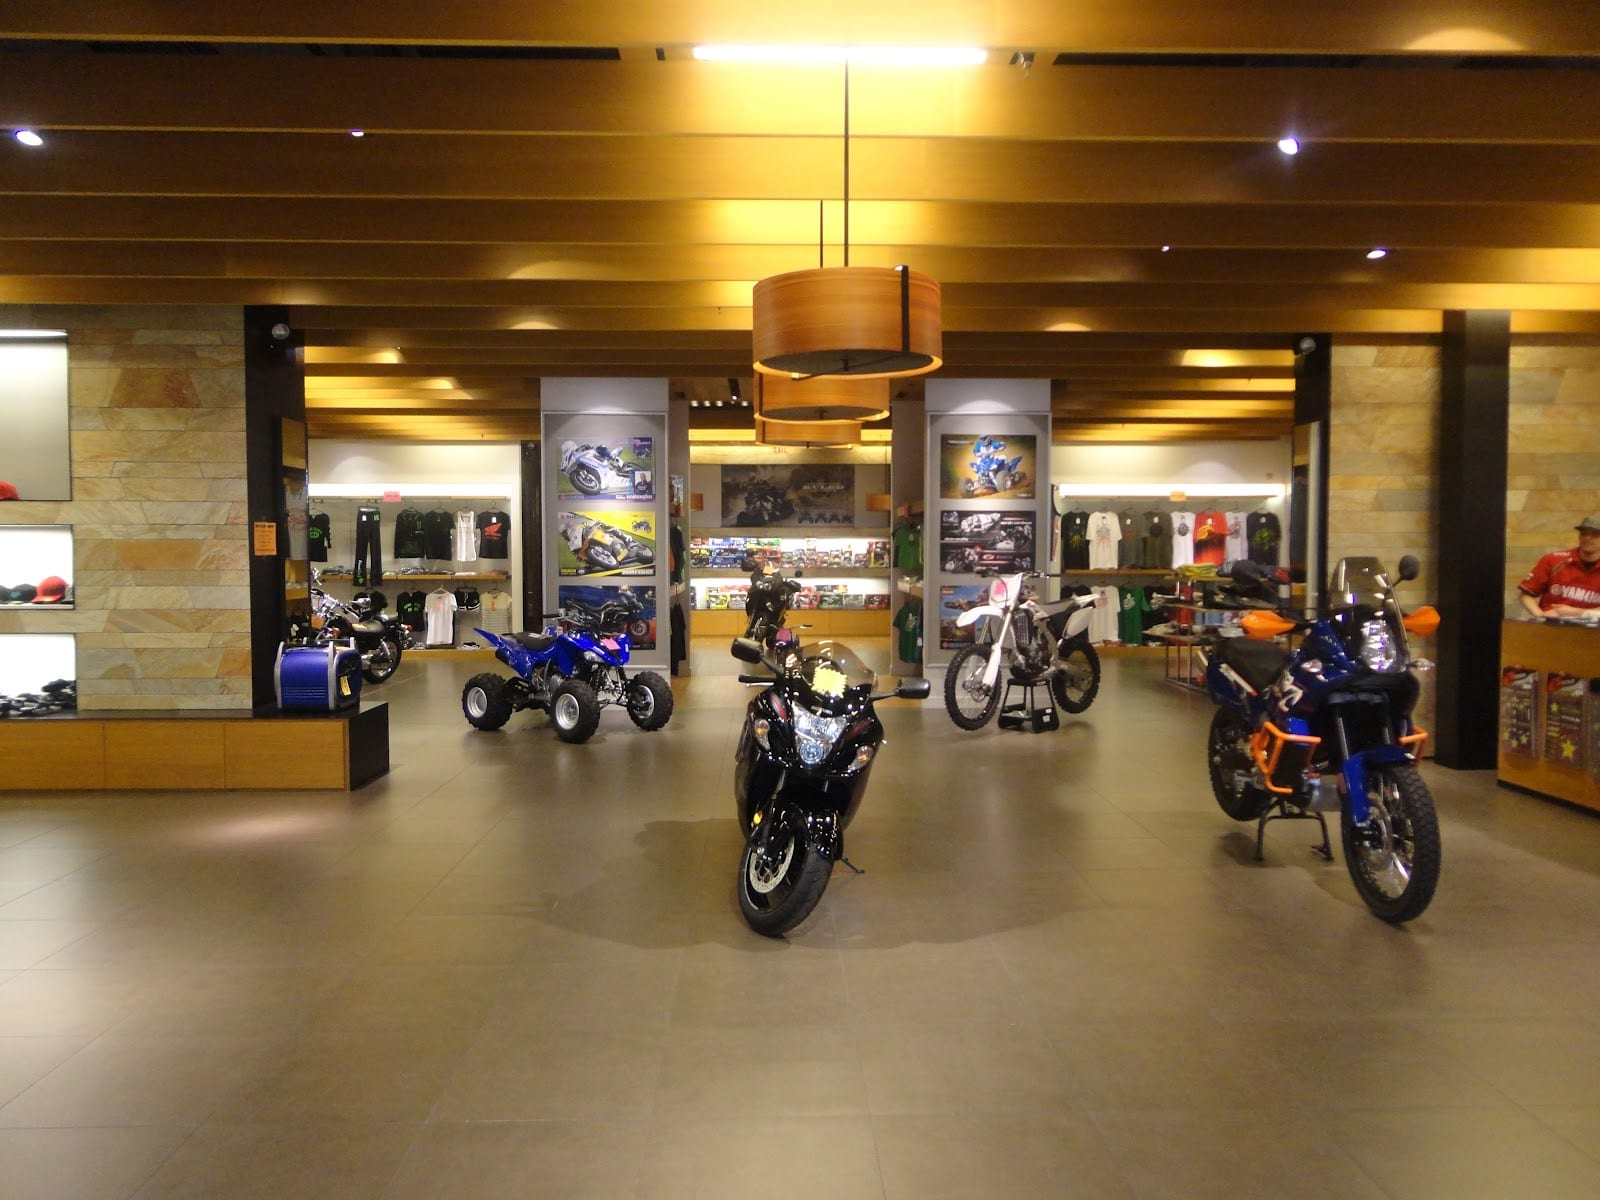 Four Teens Arrested in Dirt Bike Thefts from Dealership